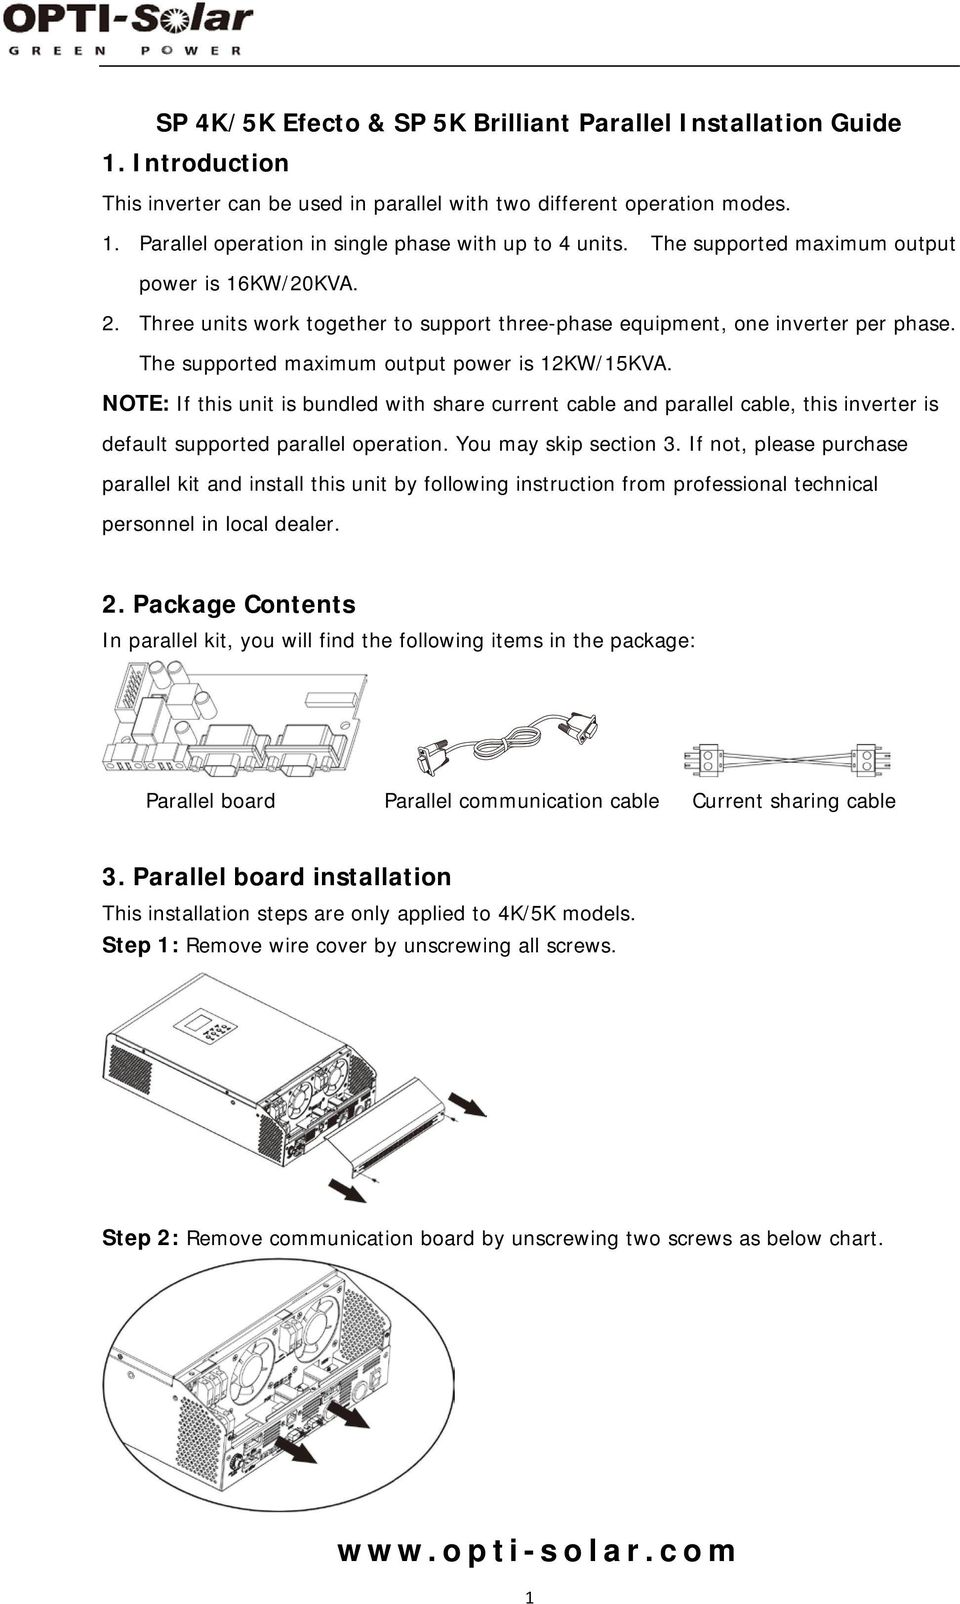 Sp 4k 5k Efecto Brilliant Parallel Installation Guide 1 Port Wiring Diagram Note If This Unit Is Bundled With Share Current Cable And